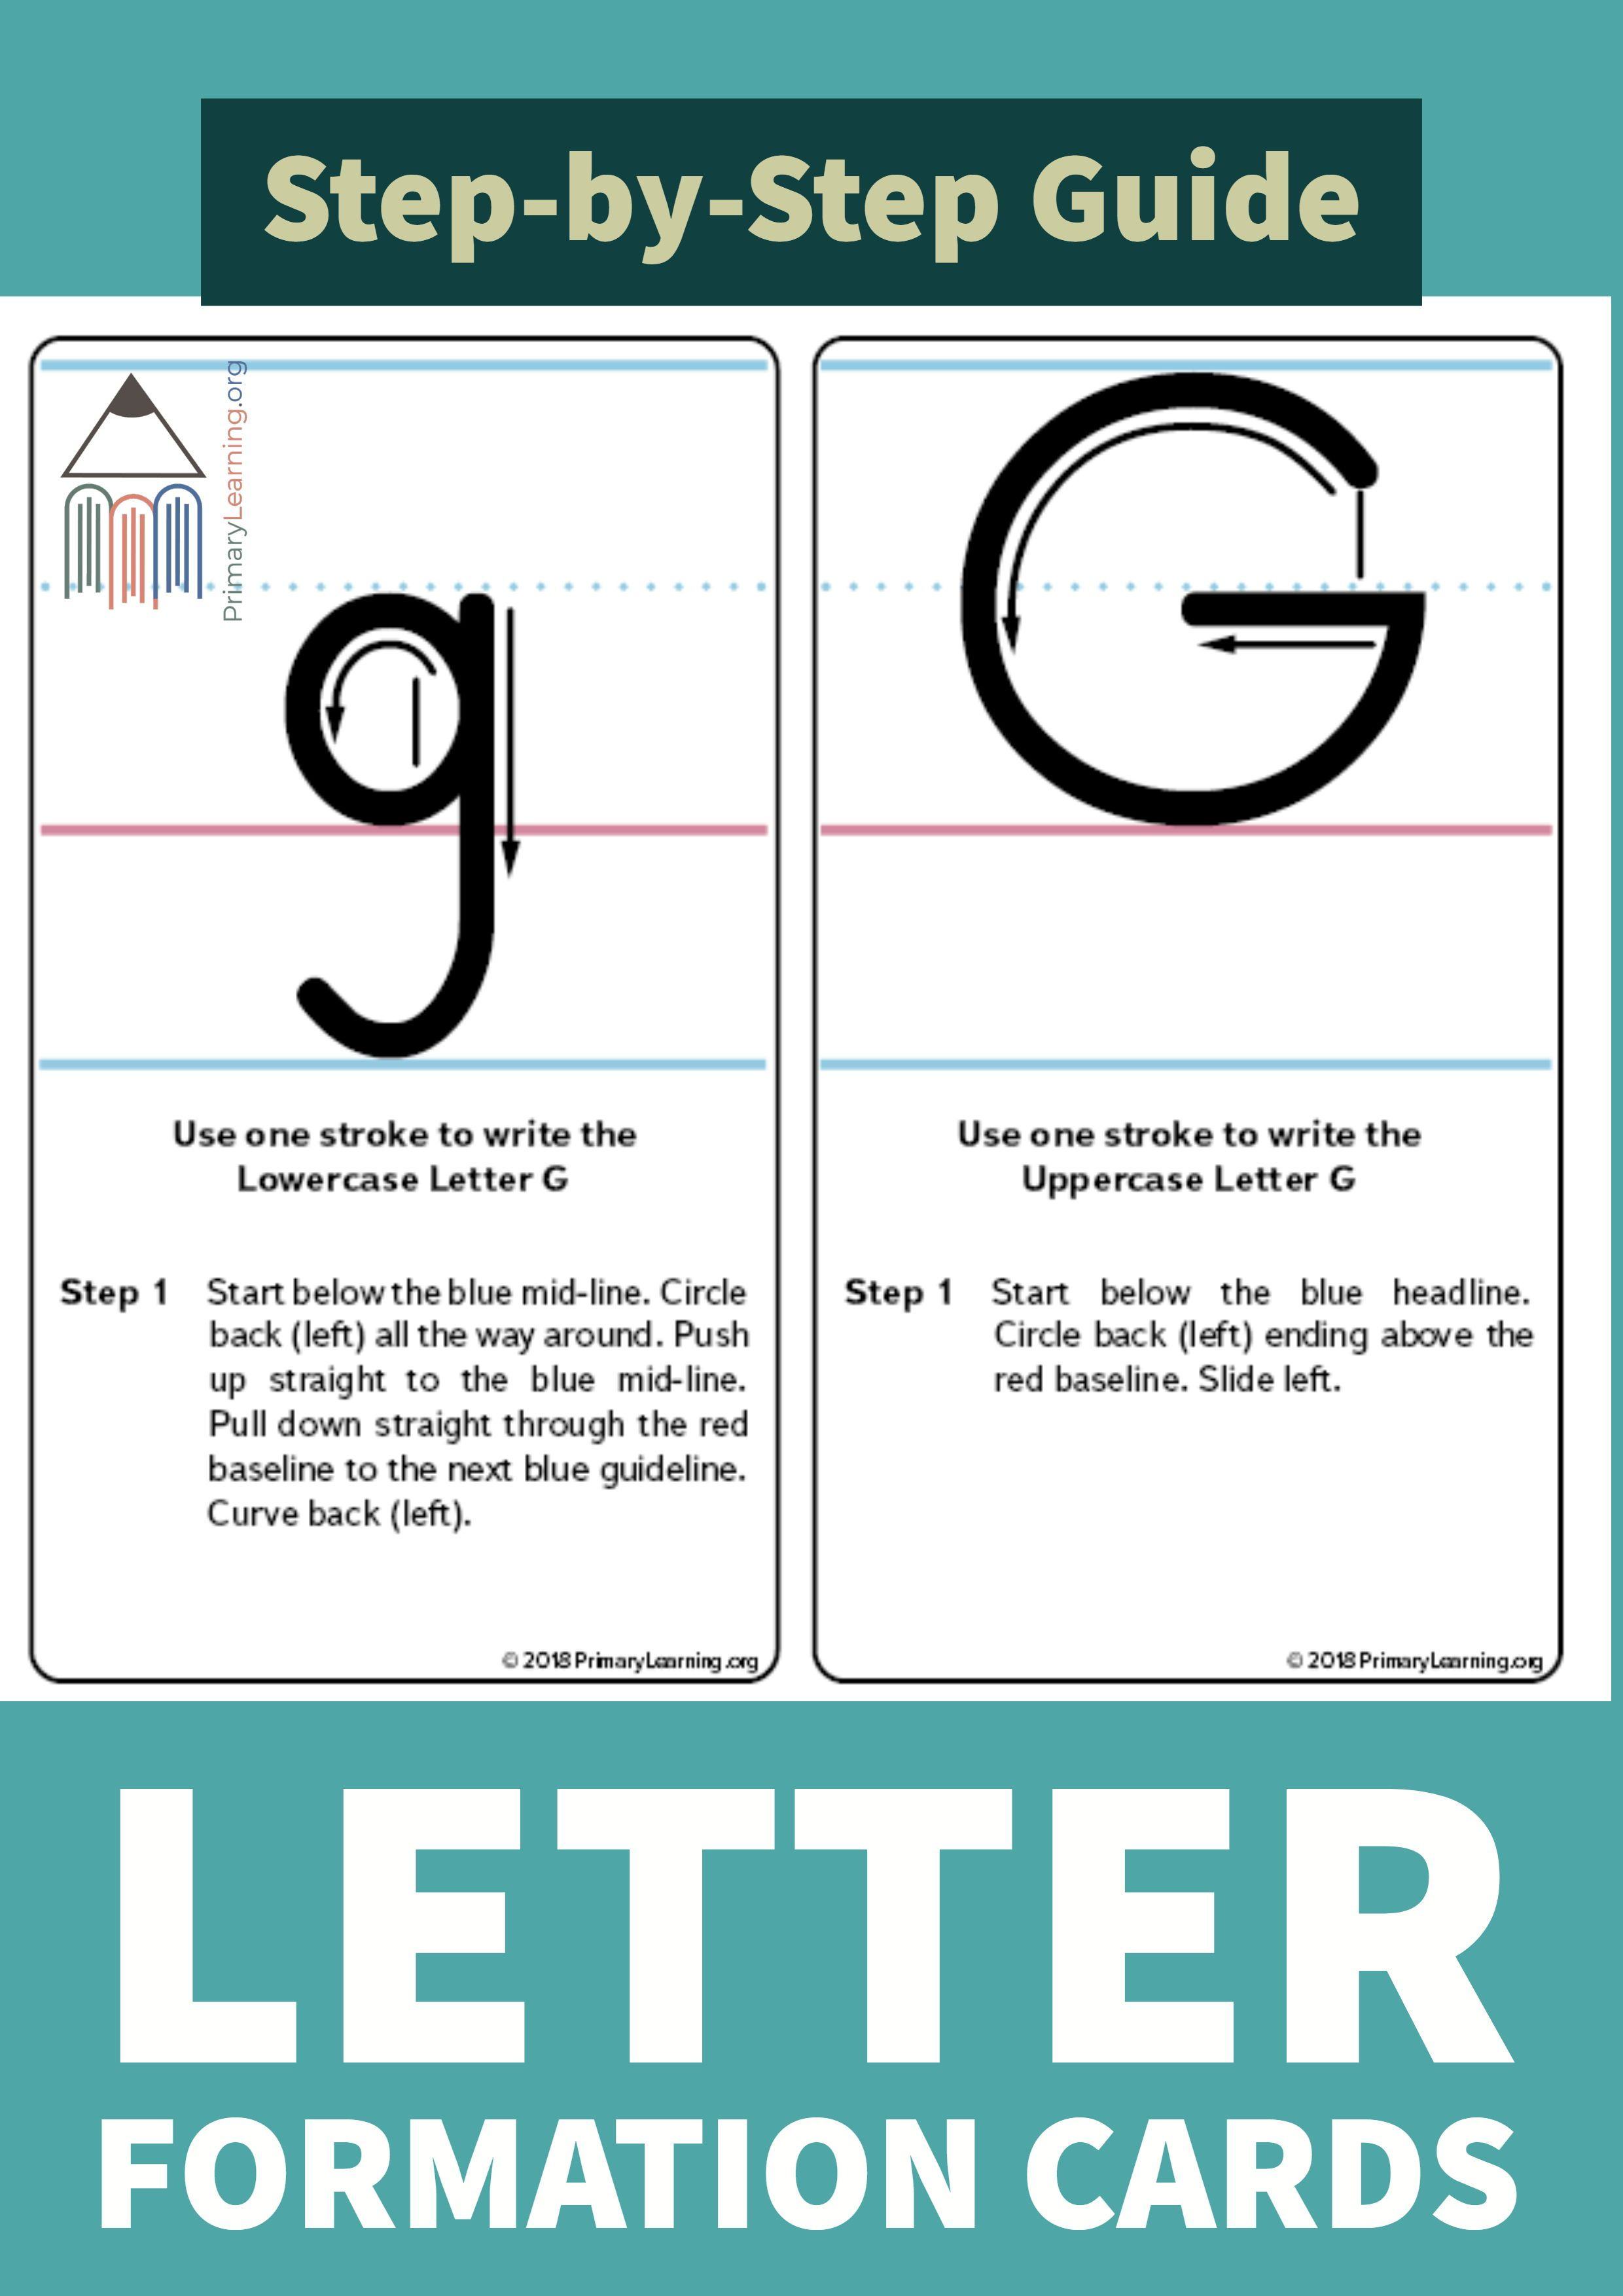 These Cards Contain Step By Step Instruction On How To Write The Letter G Using The Continuous Method Letter Writing For Kids Handwriting Instruction Lettering [ 3509 x 2480 Pixel ]